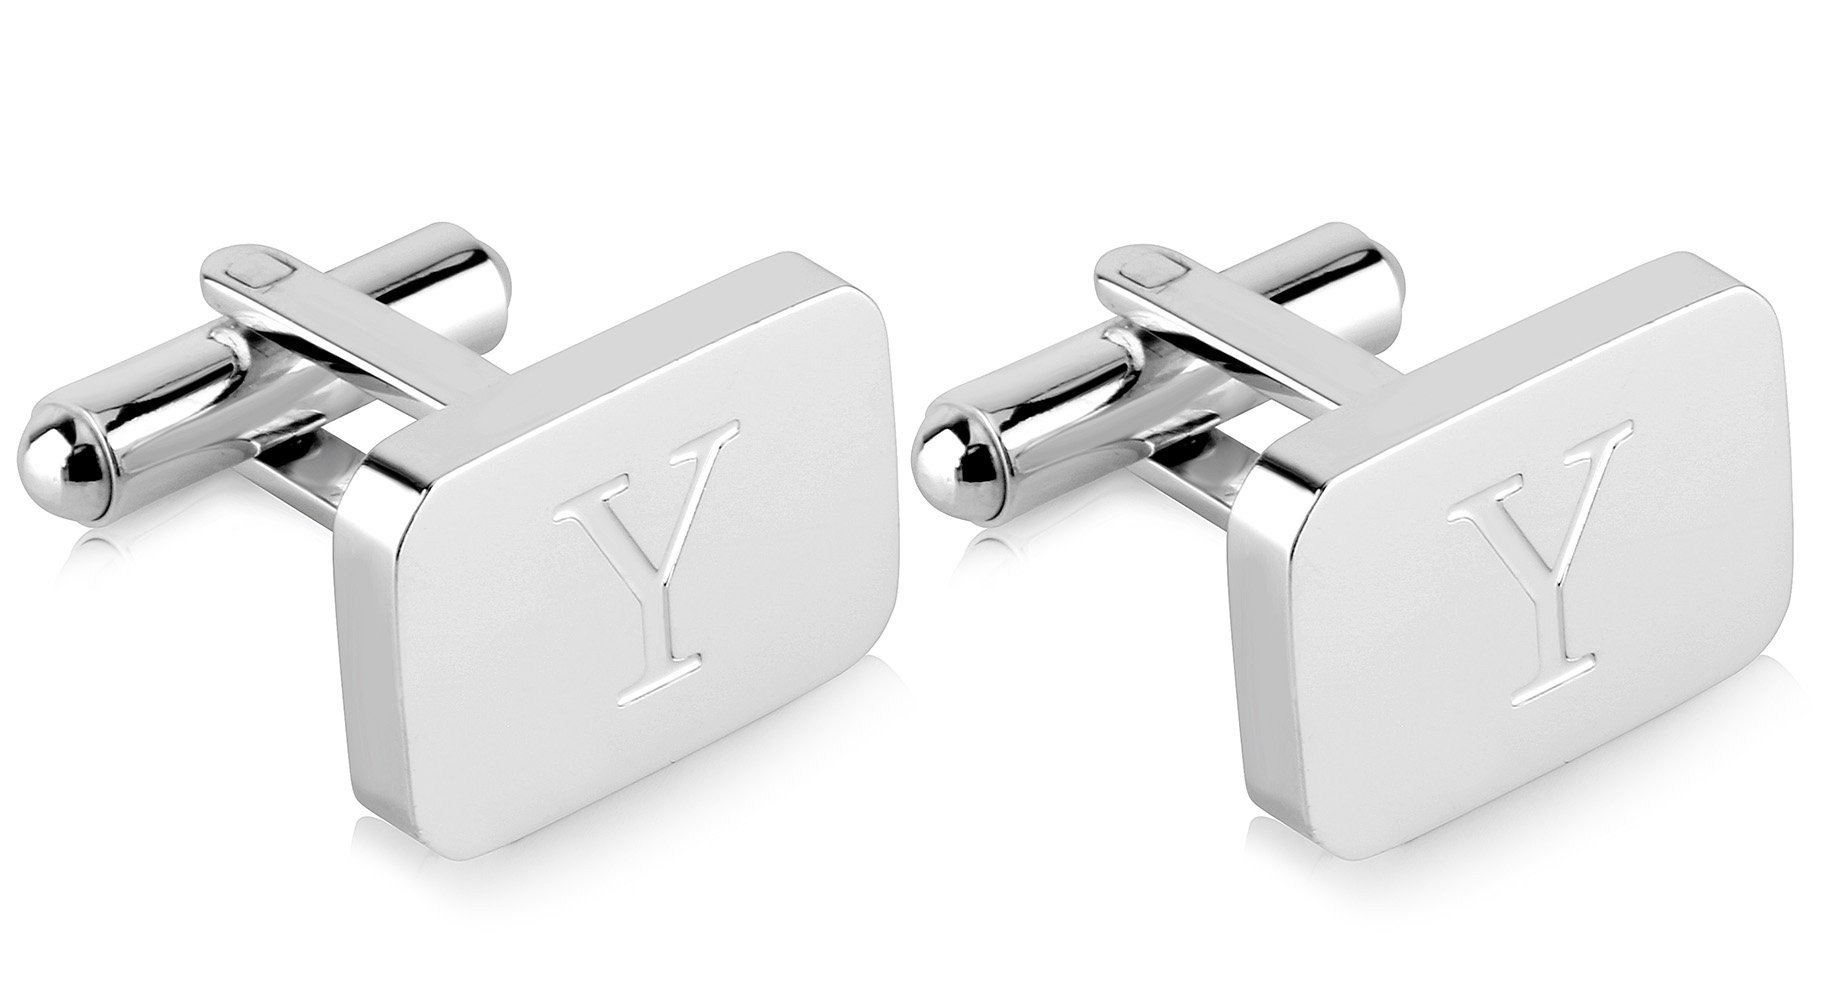 White-Gold Plated Monogram Initial Engraved Stainless Steel Man's Cufflinks With Gift Box -Personalized Alphabet Letter's By Lux & Pier (Y- White Gold)